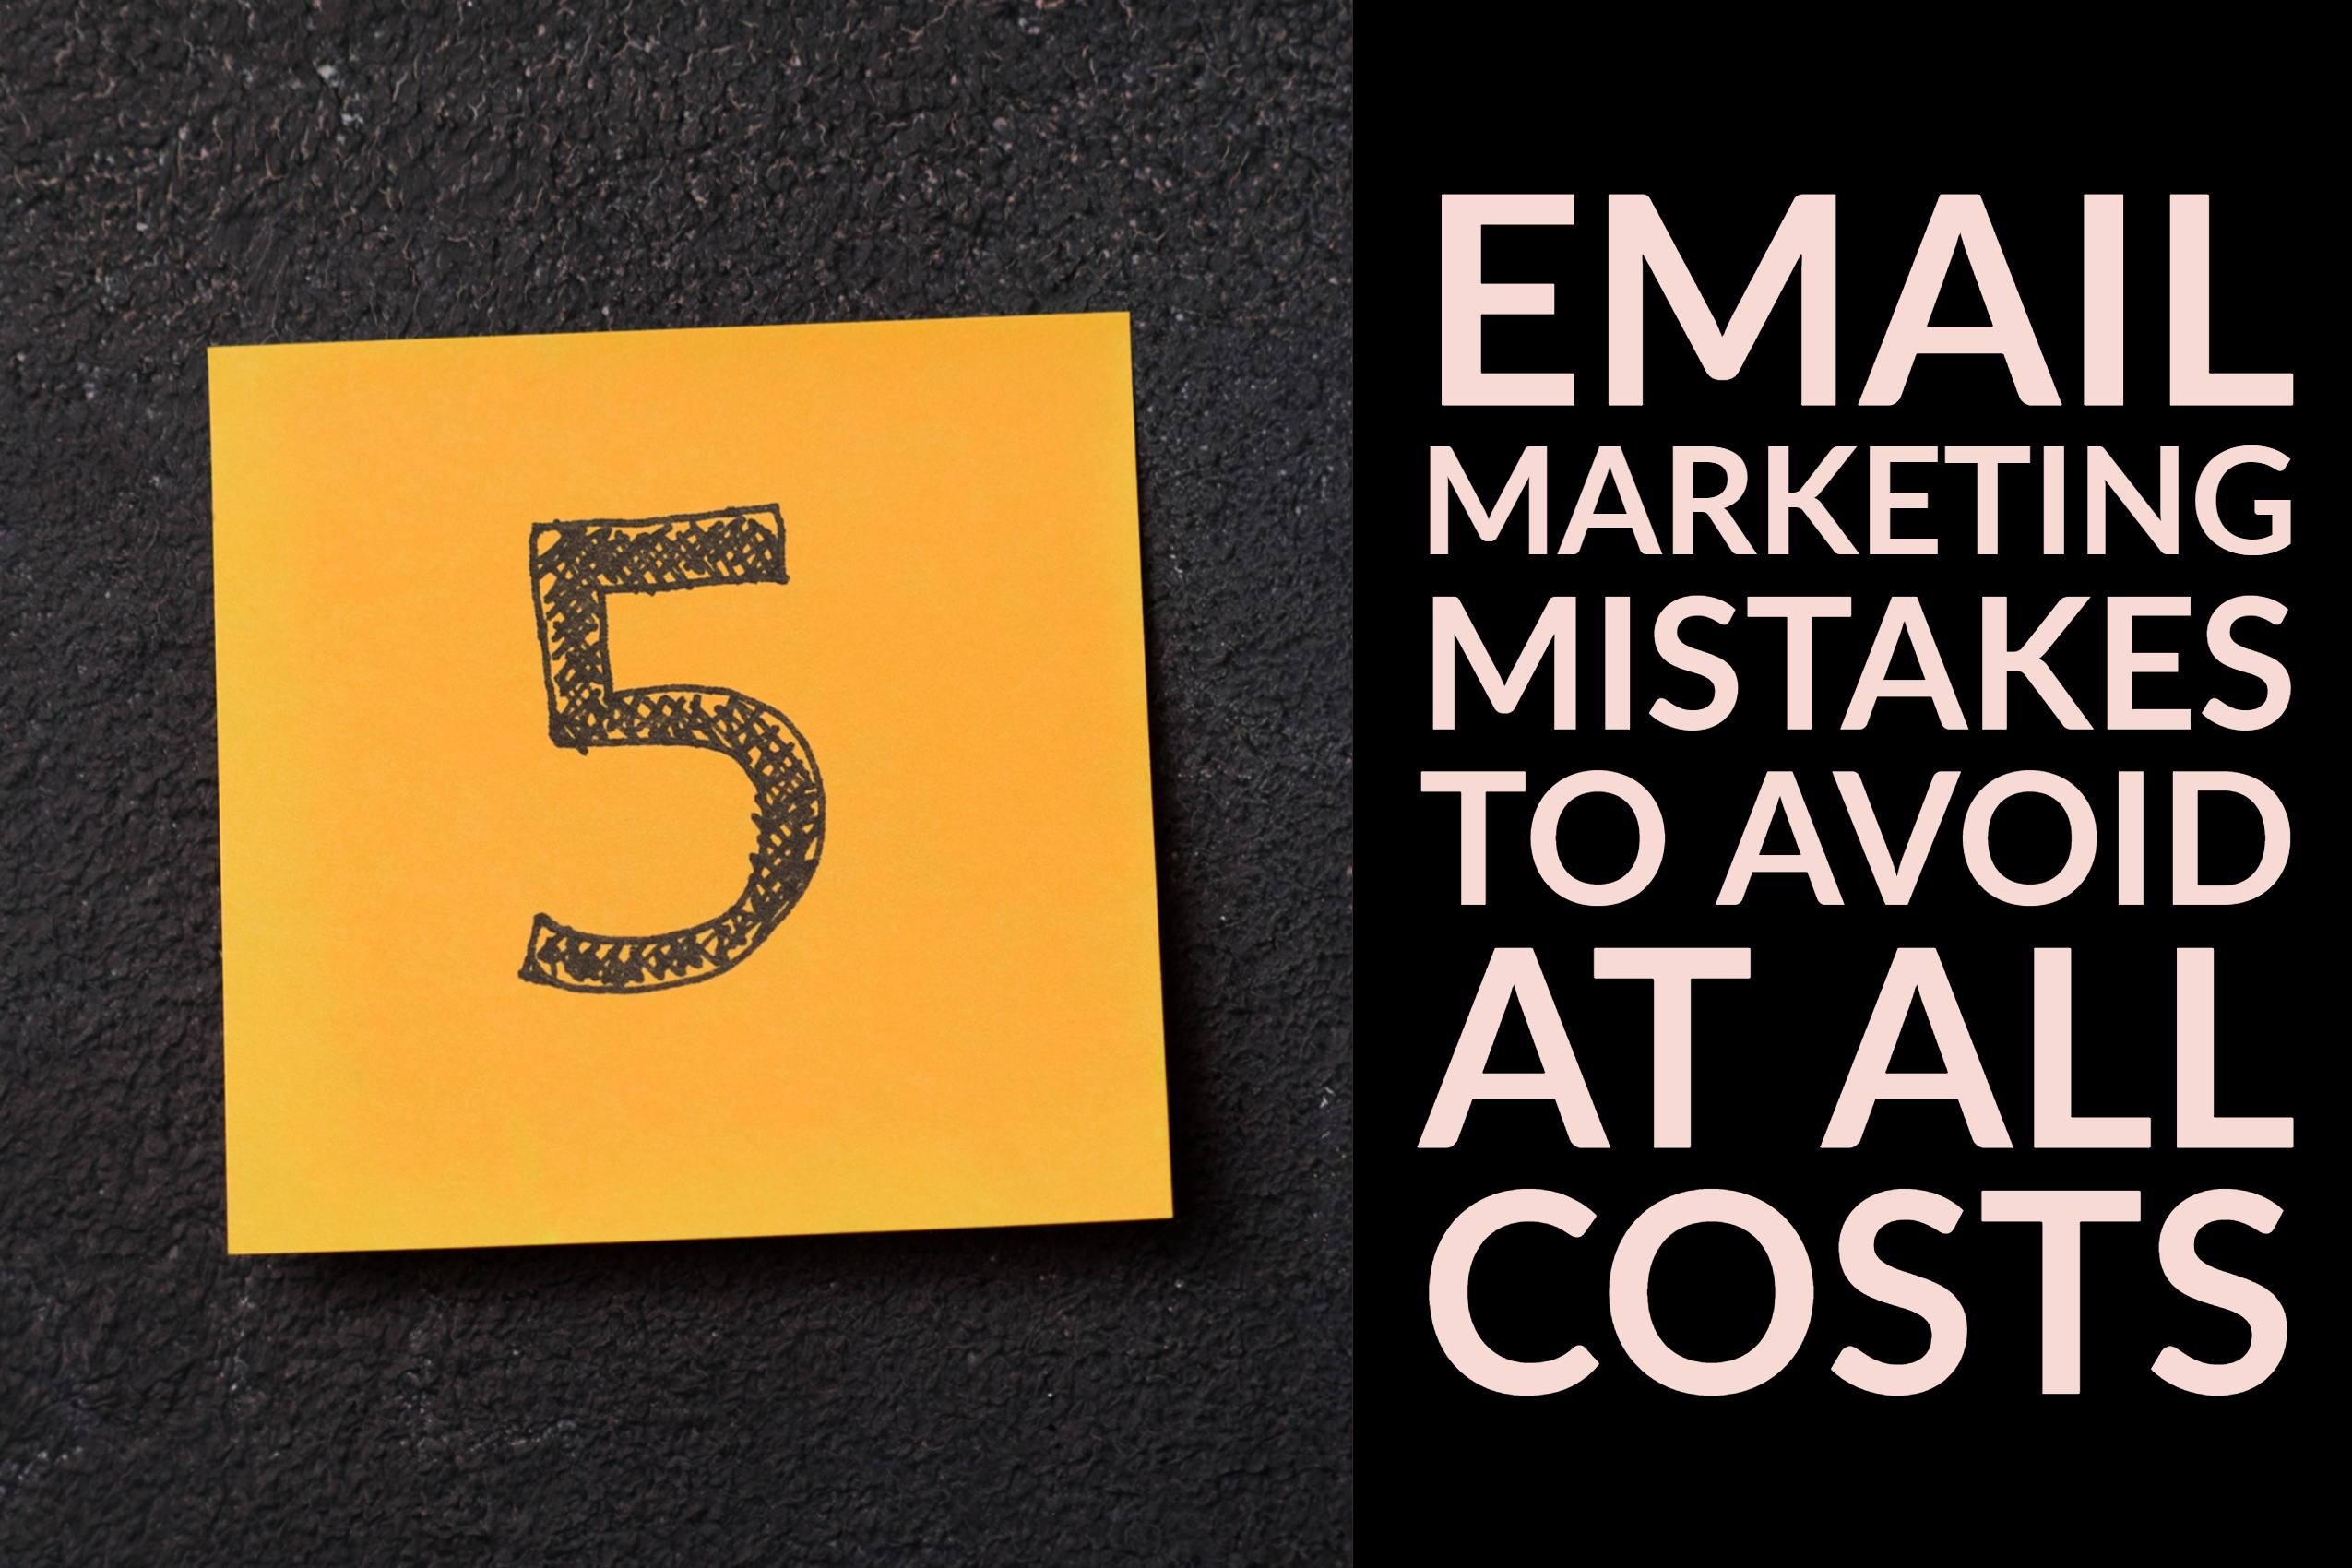 5 Email Marketing Mistakes to Avoid At All Costs (1)